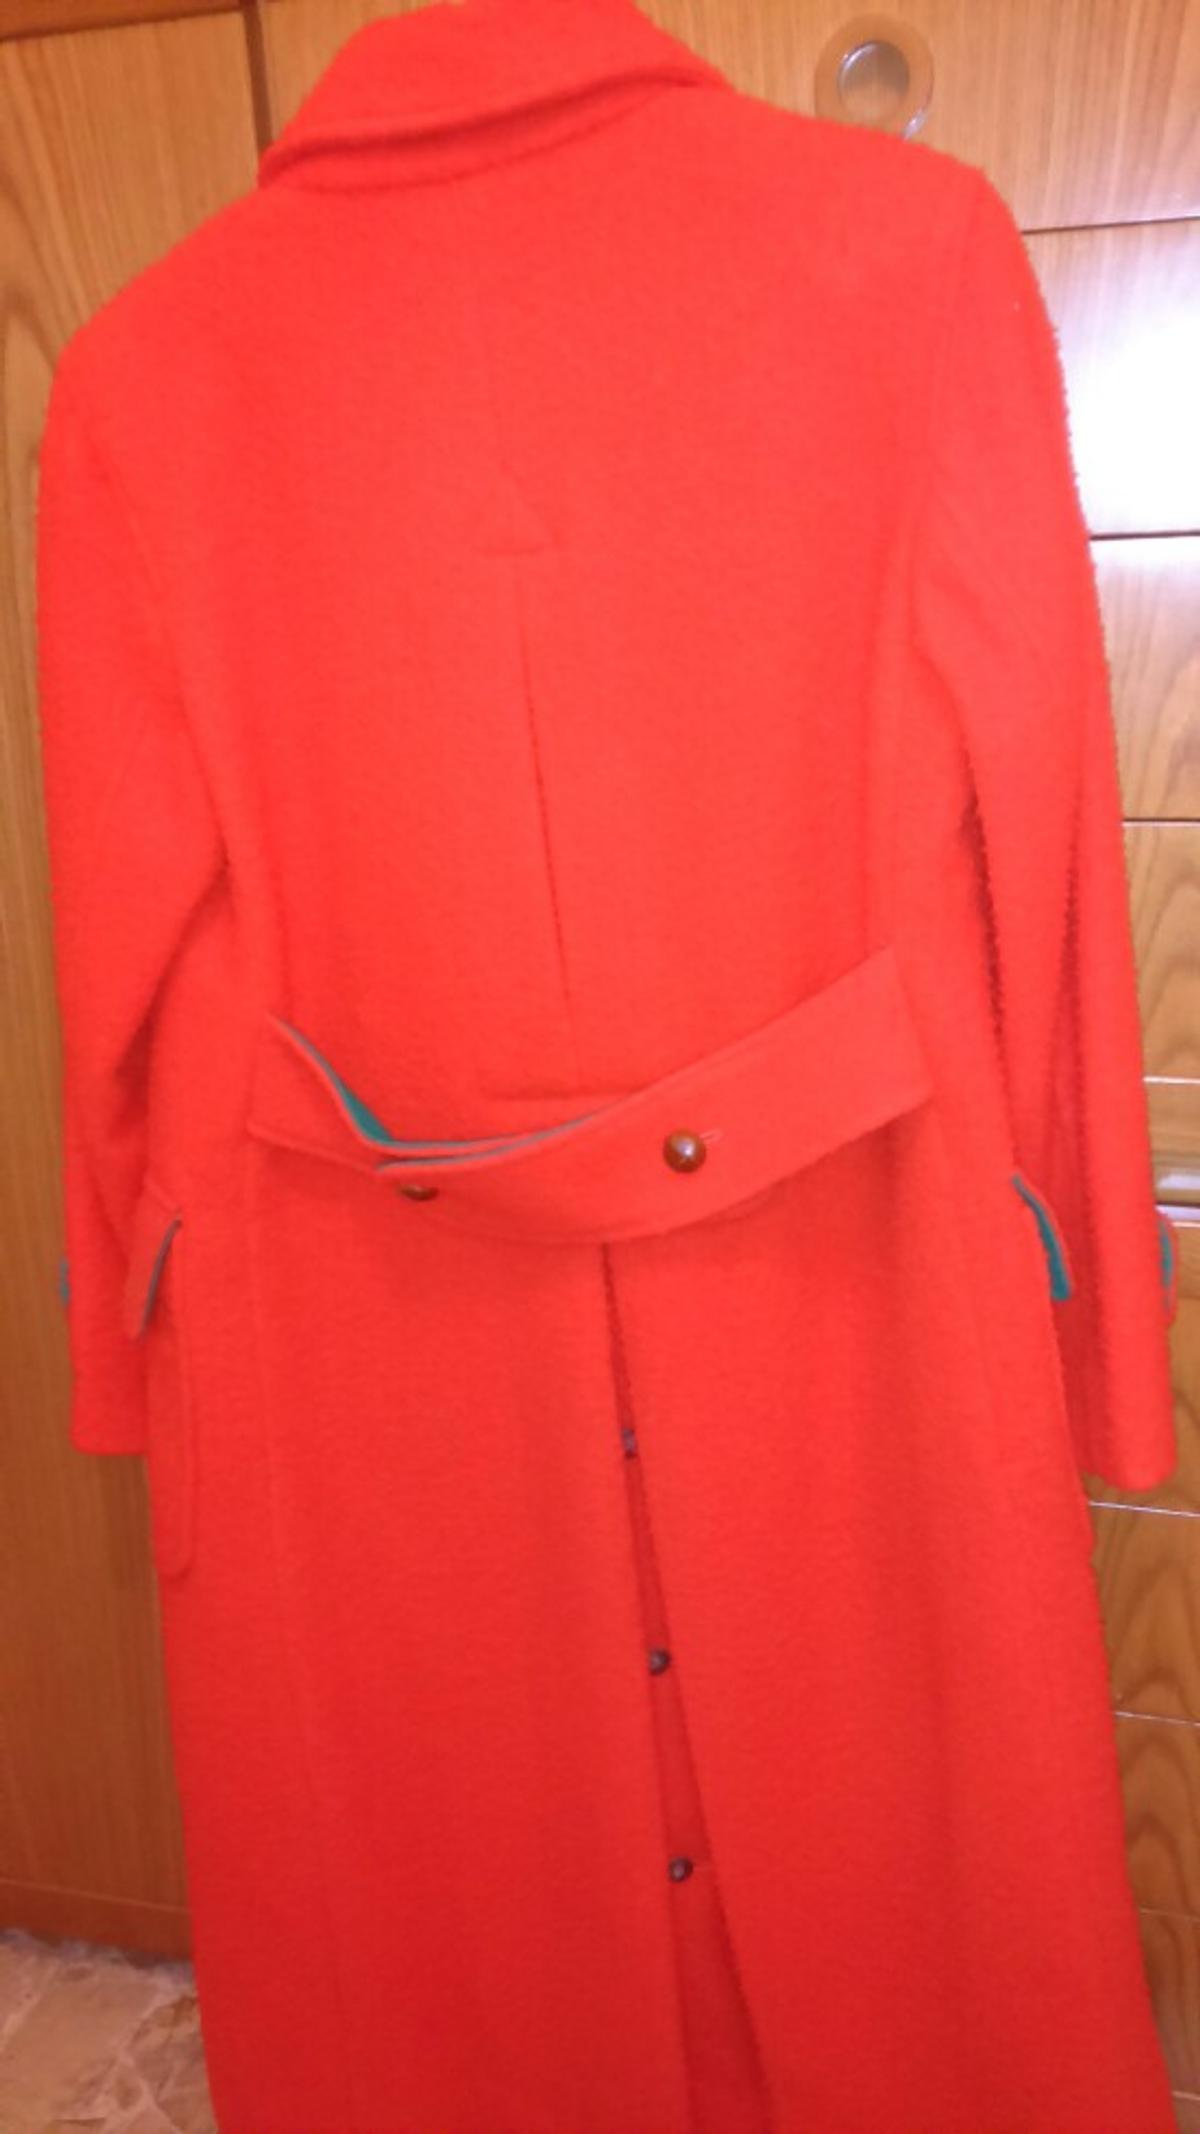 Cappotto donna Casentino in 50053 Empoli for €50.00 for sale